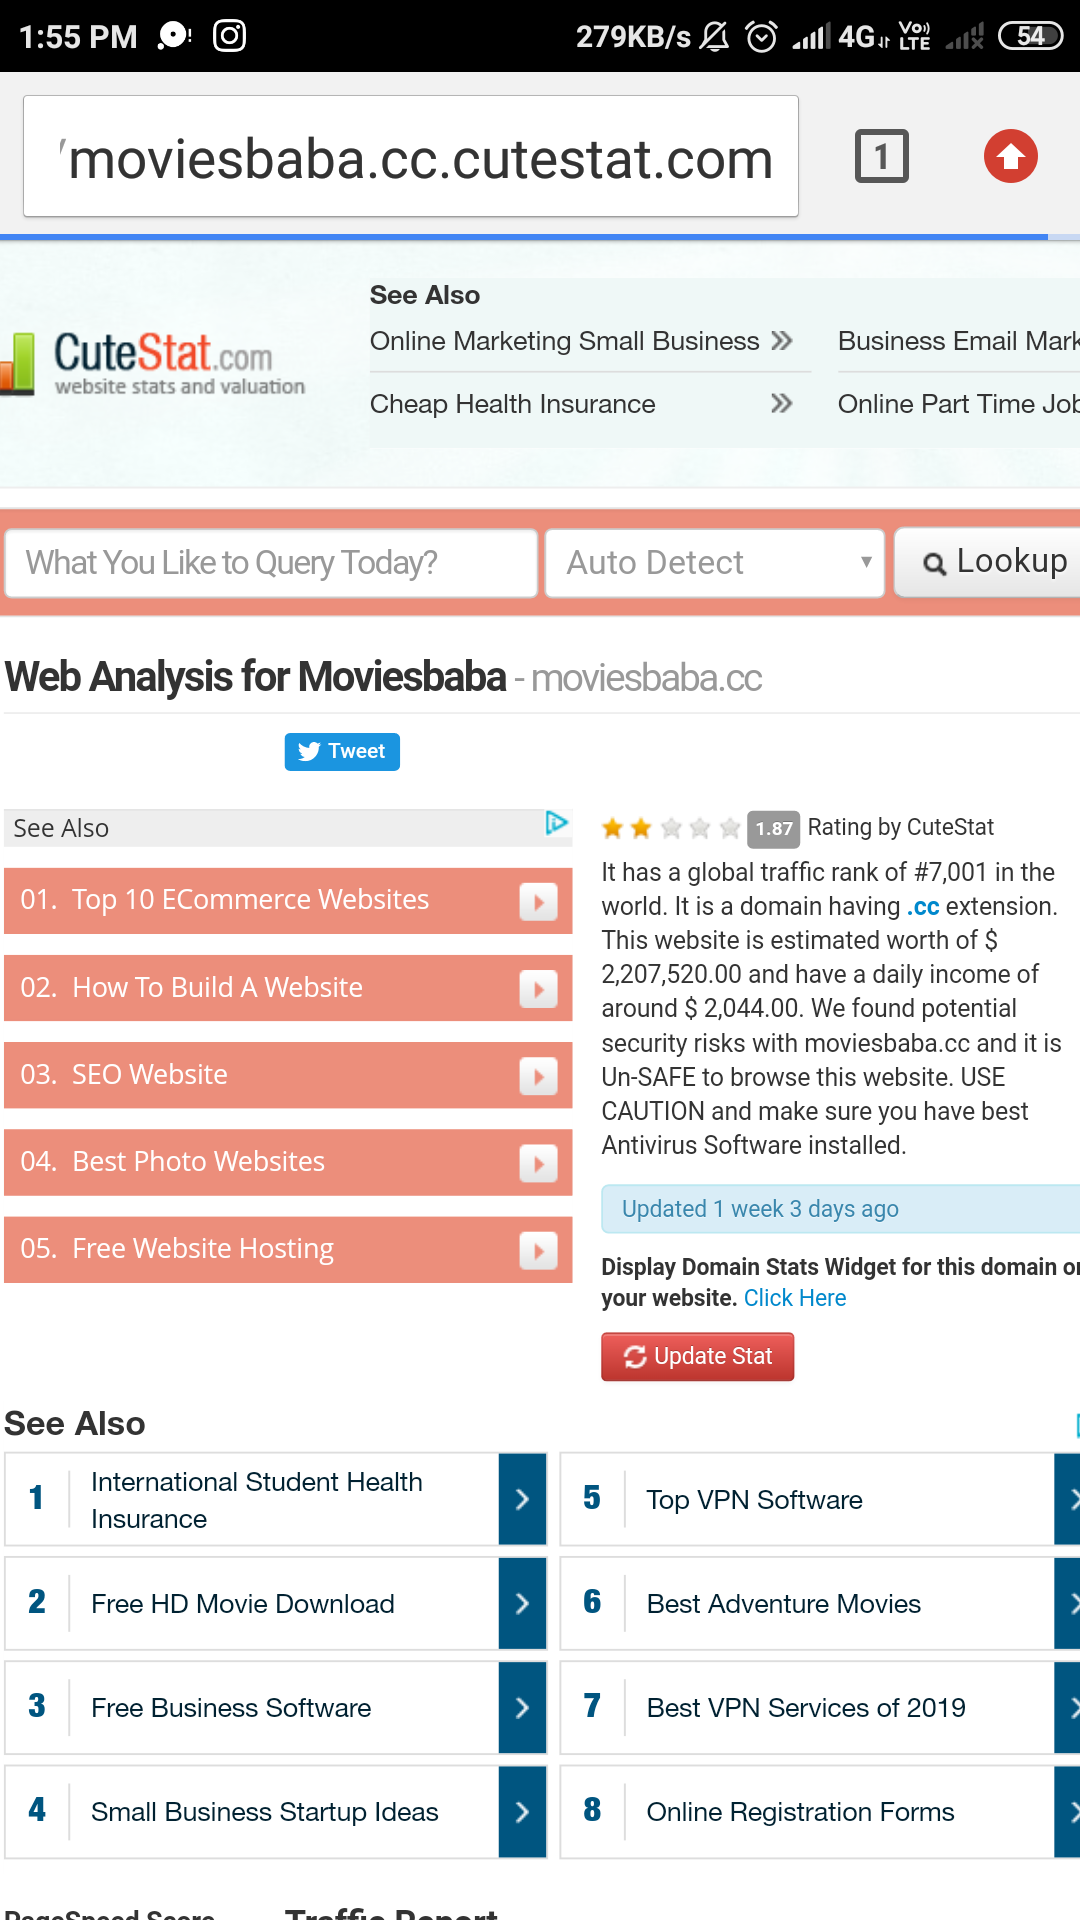 Downloading site for movies - MOVIESBABA CC Consumer Review